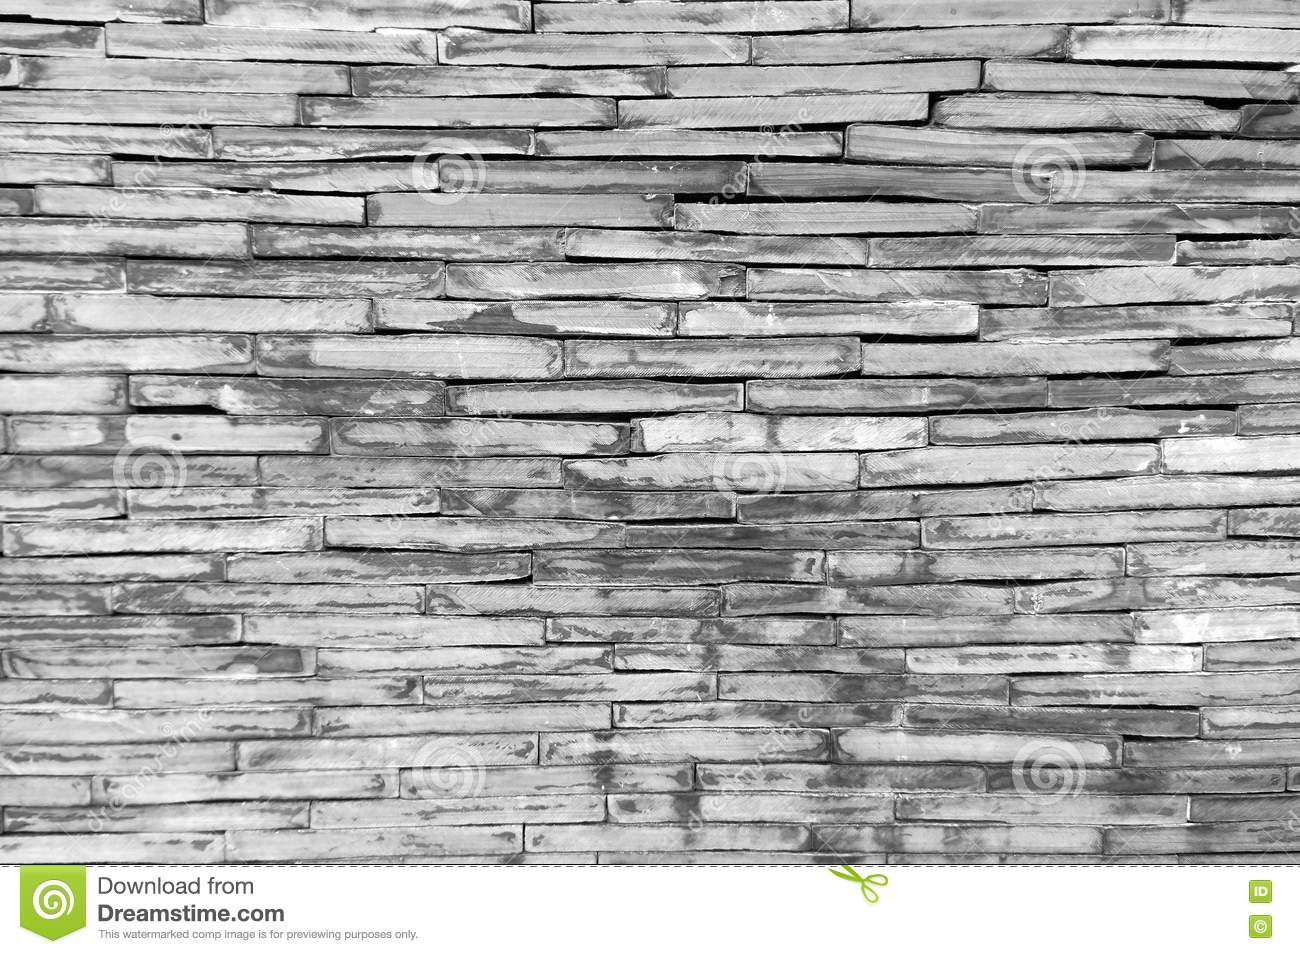 Mod le de la surface grise d corative de mur en pierre d 39 ardoise fond texture photo stock for Pierre d ardoise